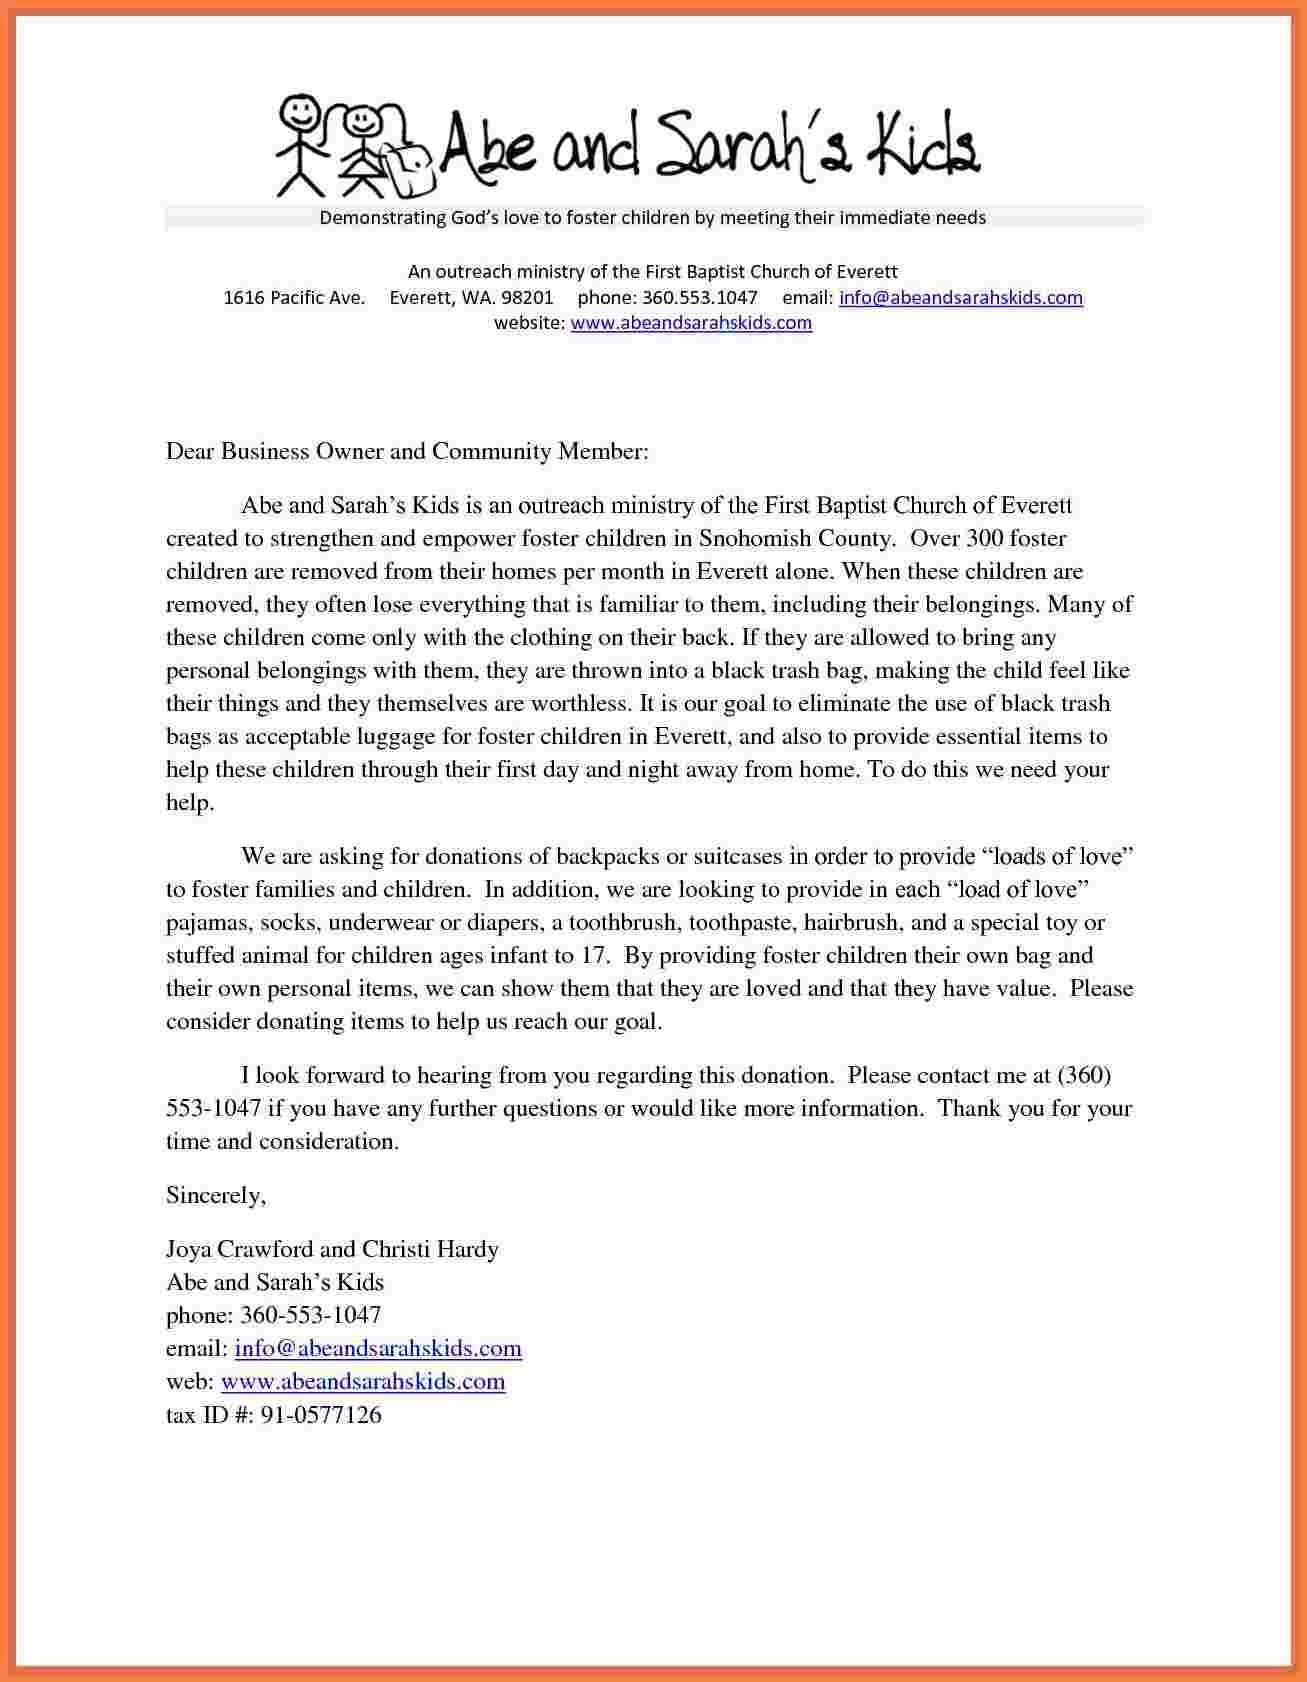 Letter format for Donation Request Fresh 8 Donation Request Letter for Church